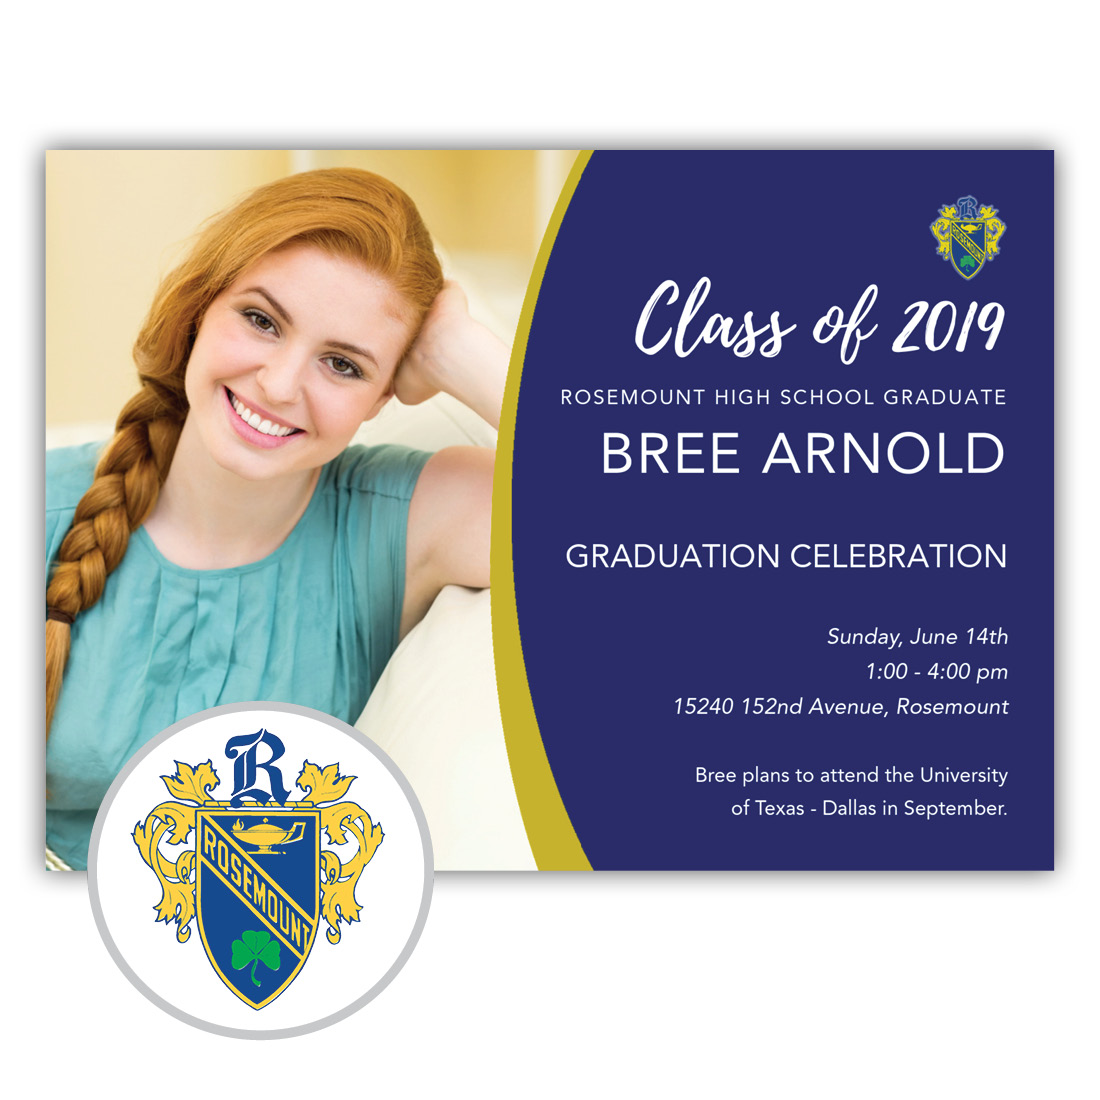 School Spirit, Rosemount High School - Focus in Pix Graduation Party Invitation or Announcement